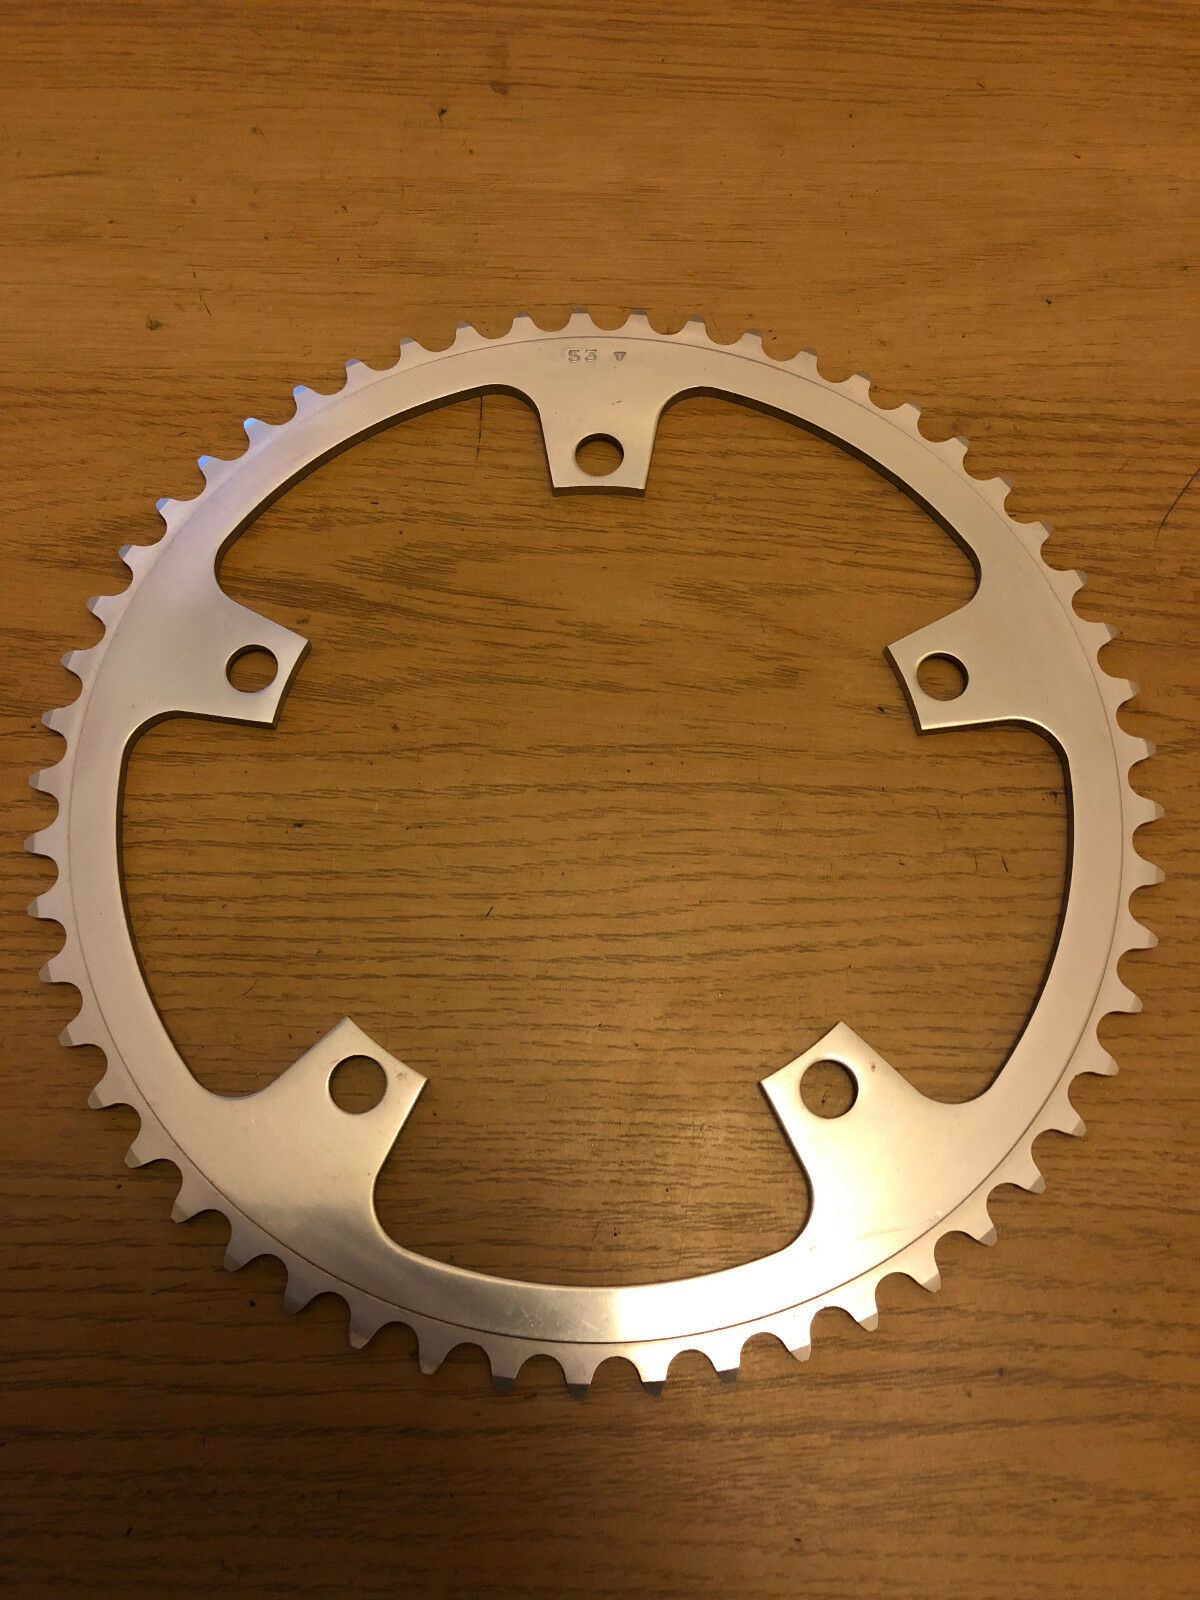 NOS Gipiemme Chainring 53t 144bcd Road, New Unused